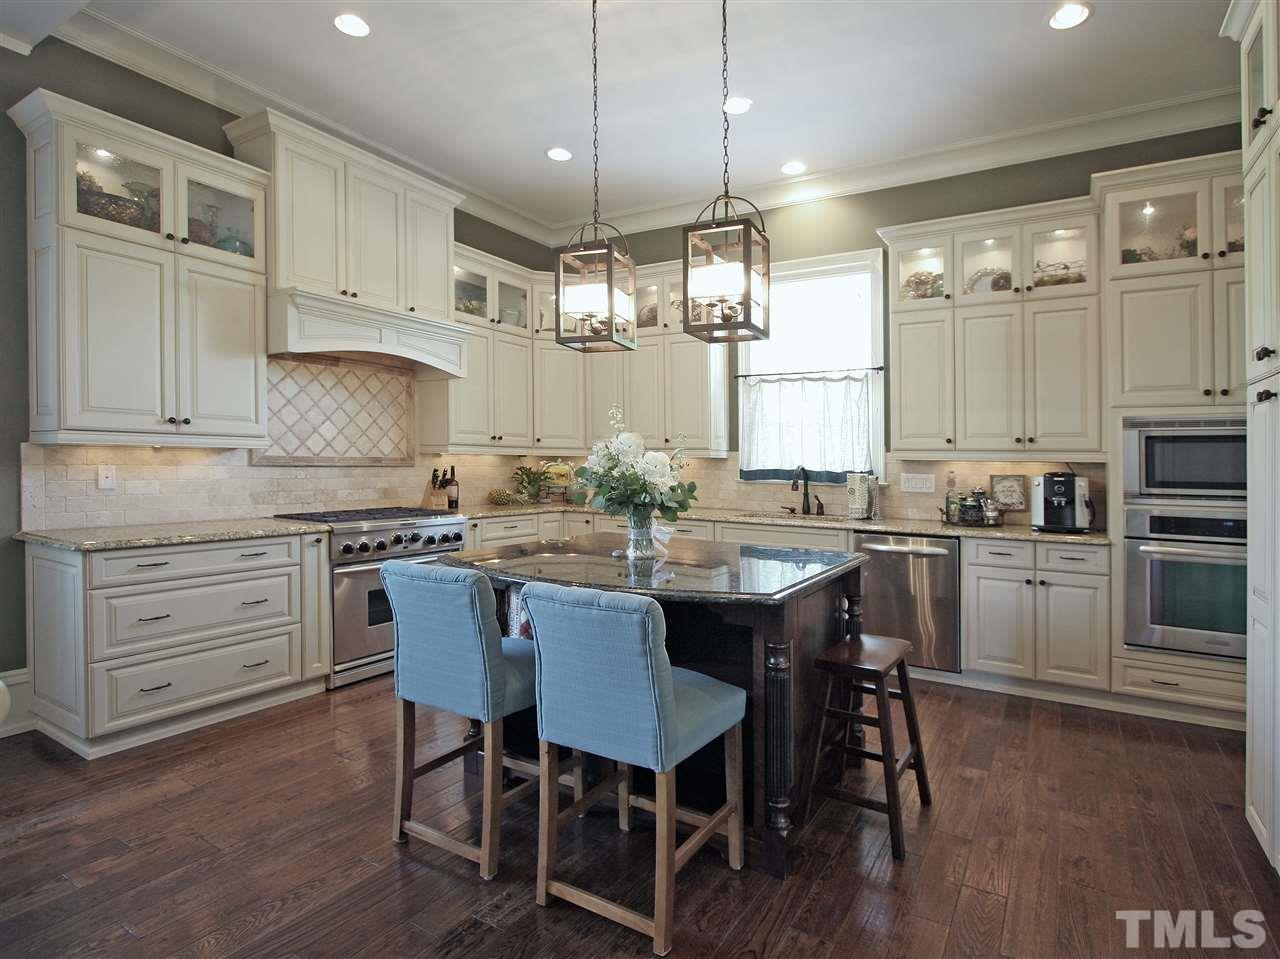 The kitchen has a great flow for cooking and for entertaining. Glass-front cabinets show off your glassware and decorative items. The central island provides seating, plus extra work space and storage. Pendant, under-cabinet, and recessed lighting.